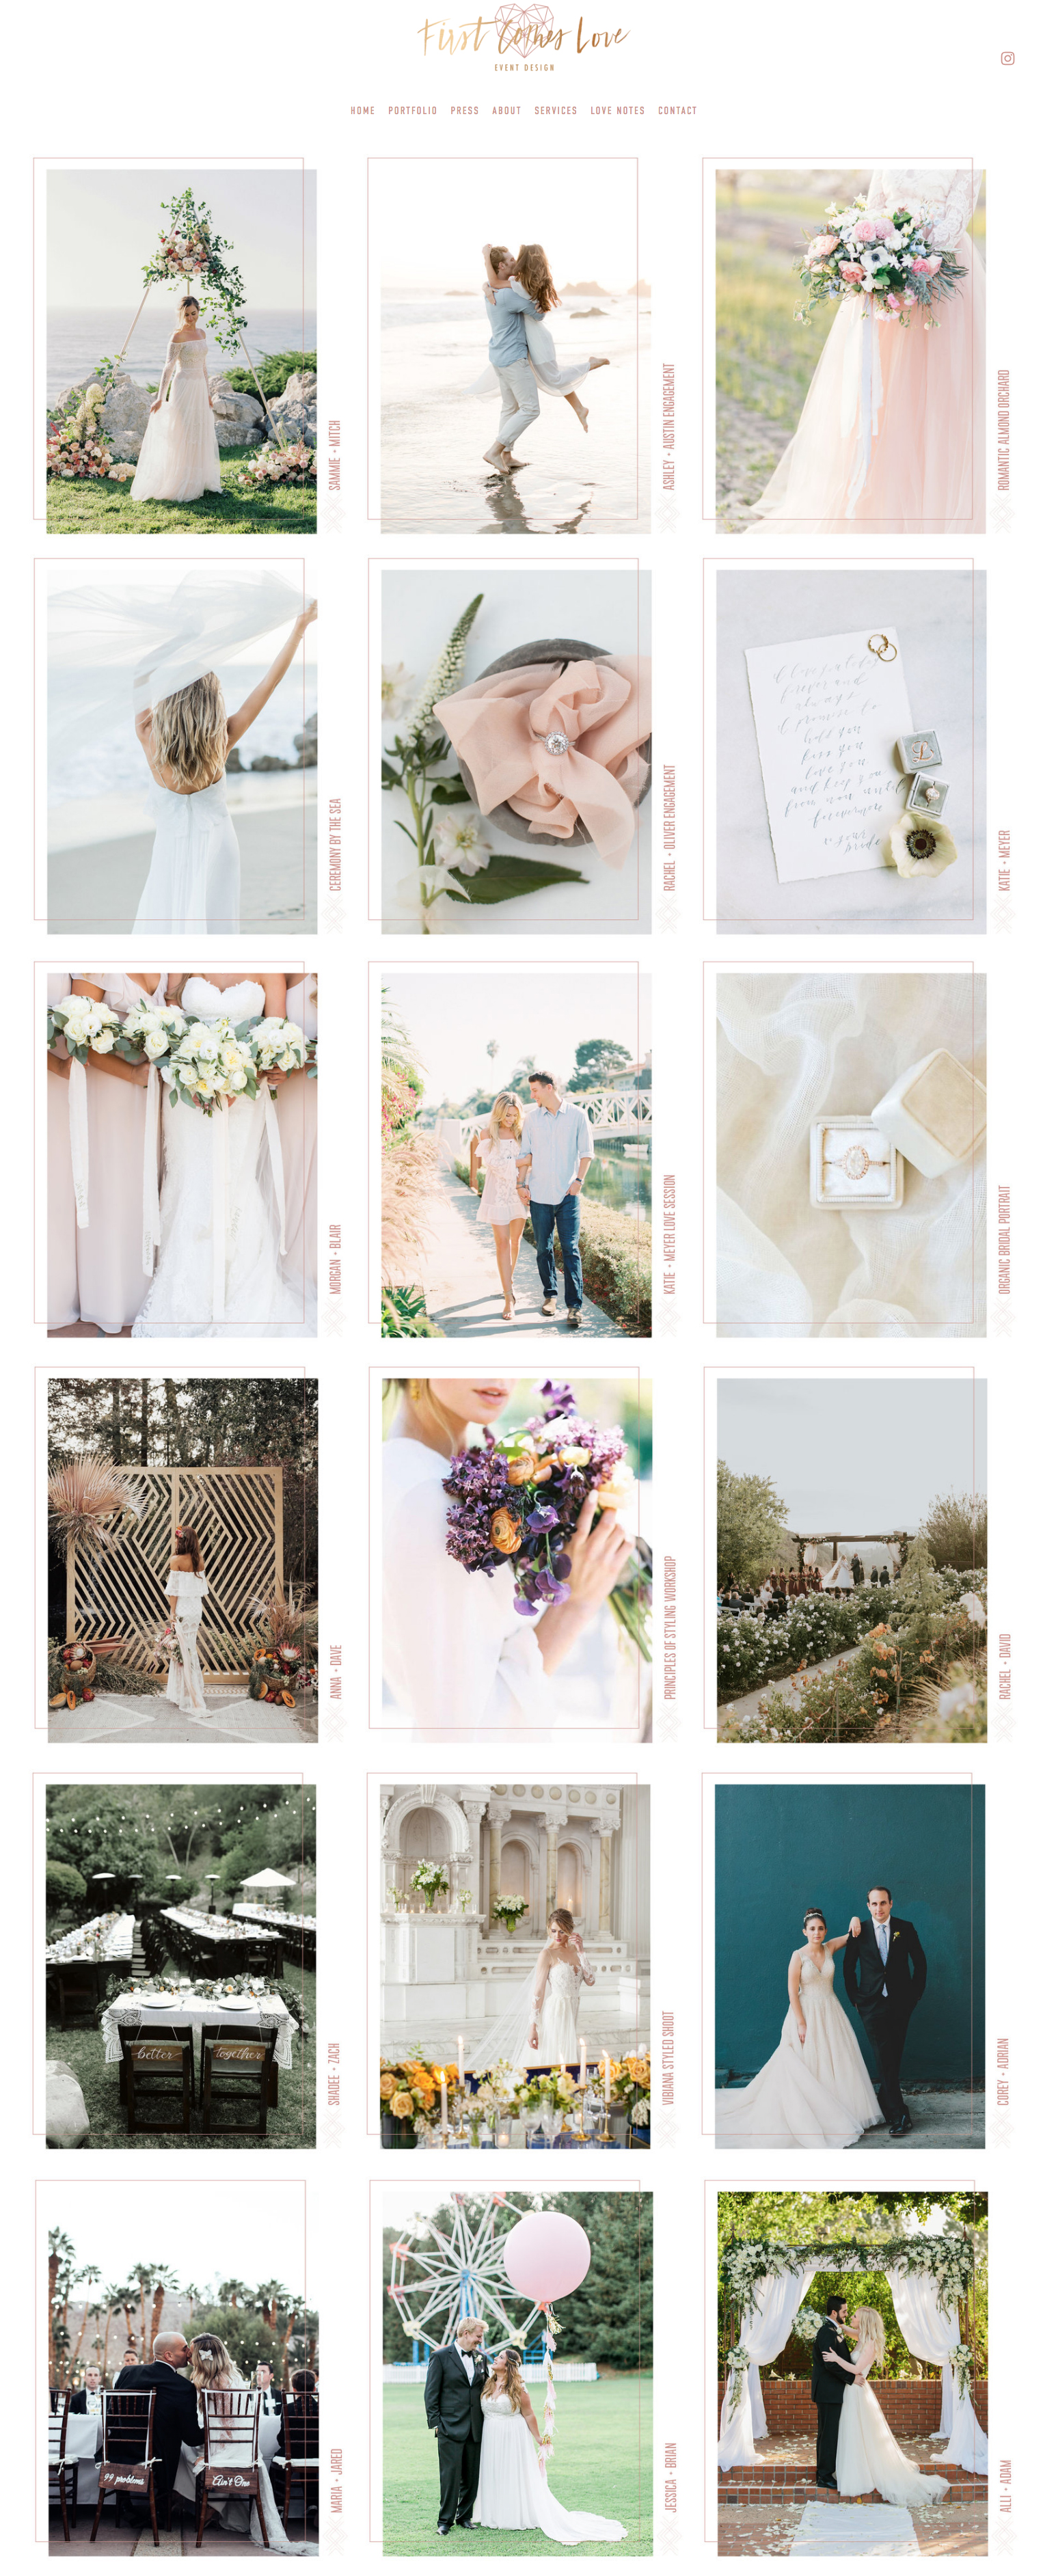 Website Designer For Wedding Professionals and Creatives | The Editor's Touch | Squarespace Web Design